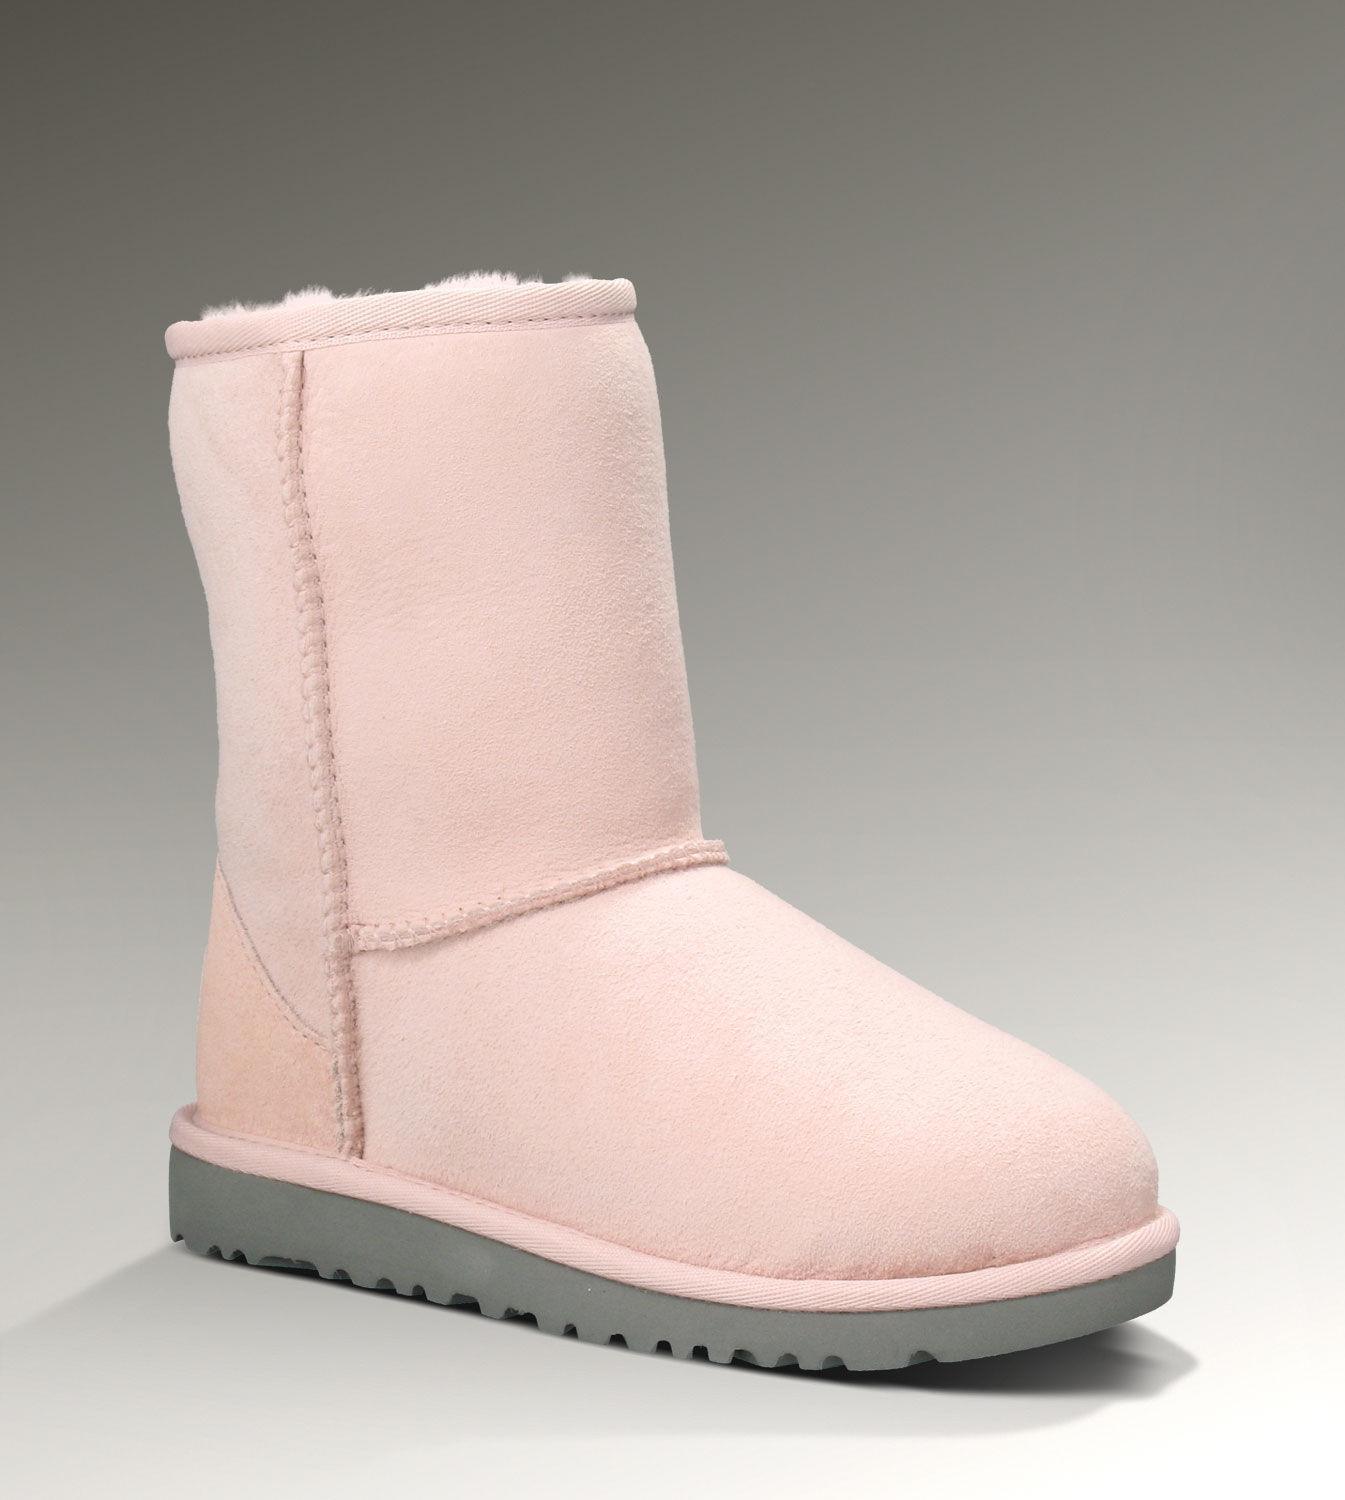 UGG Classic Short 5251 Pink Boots